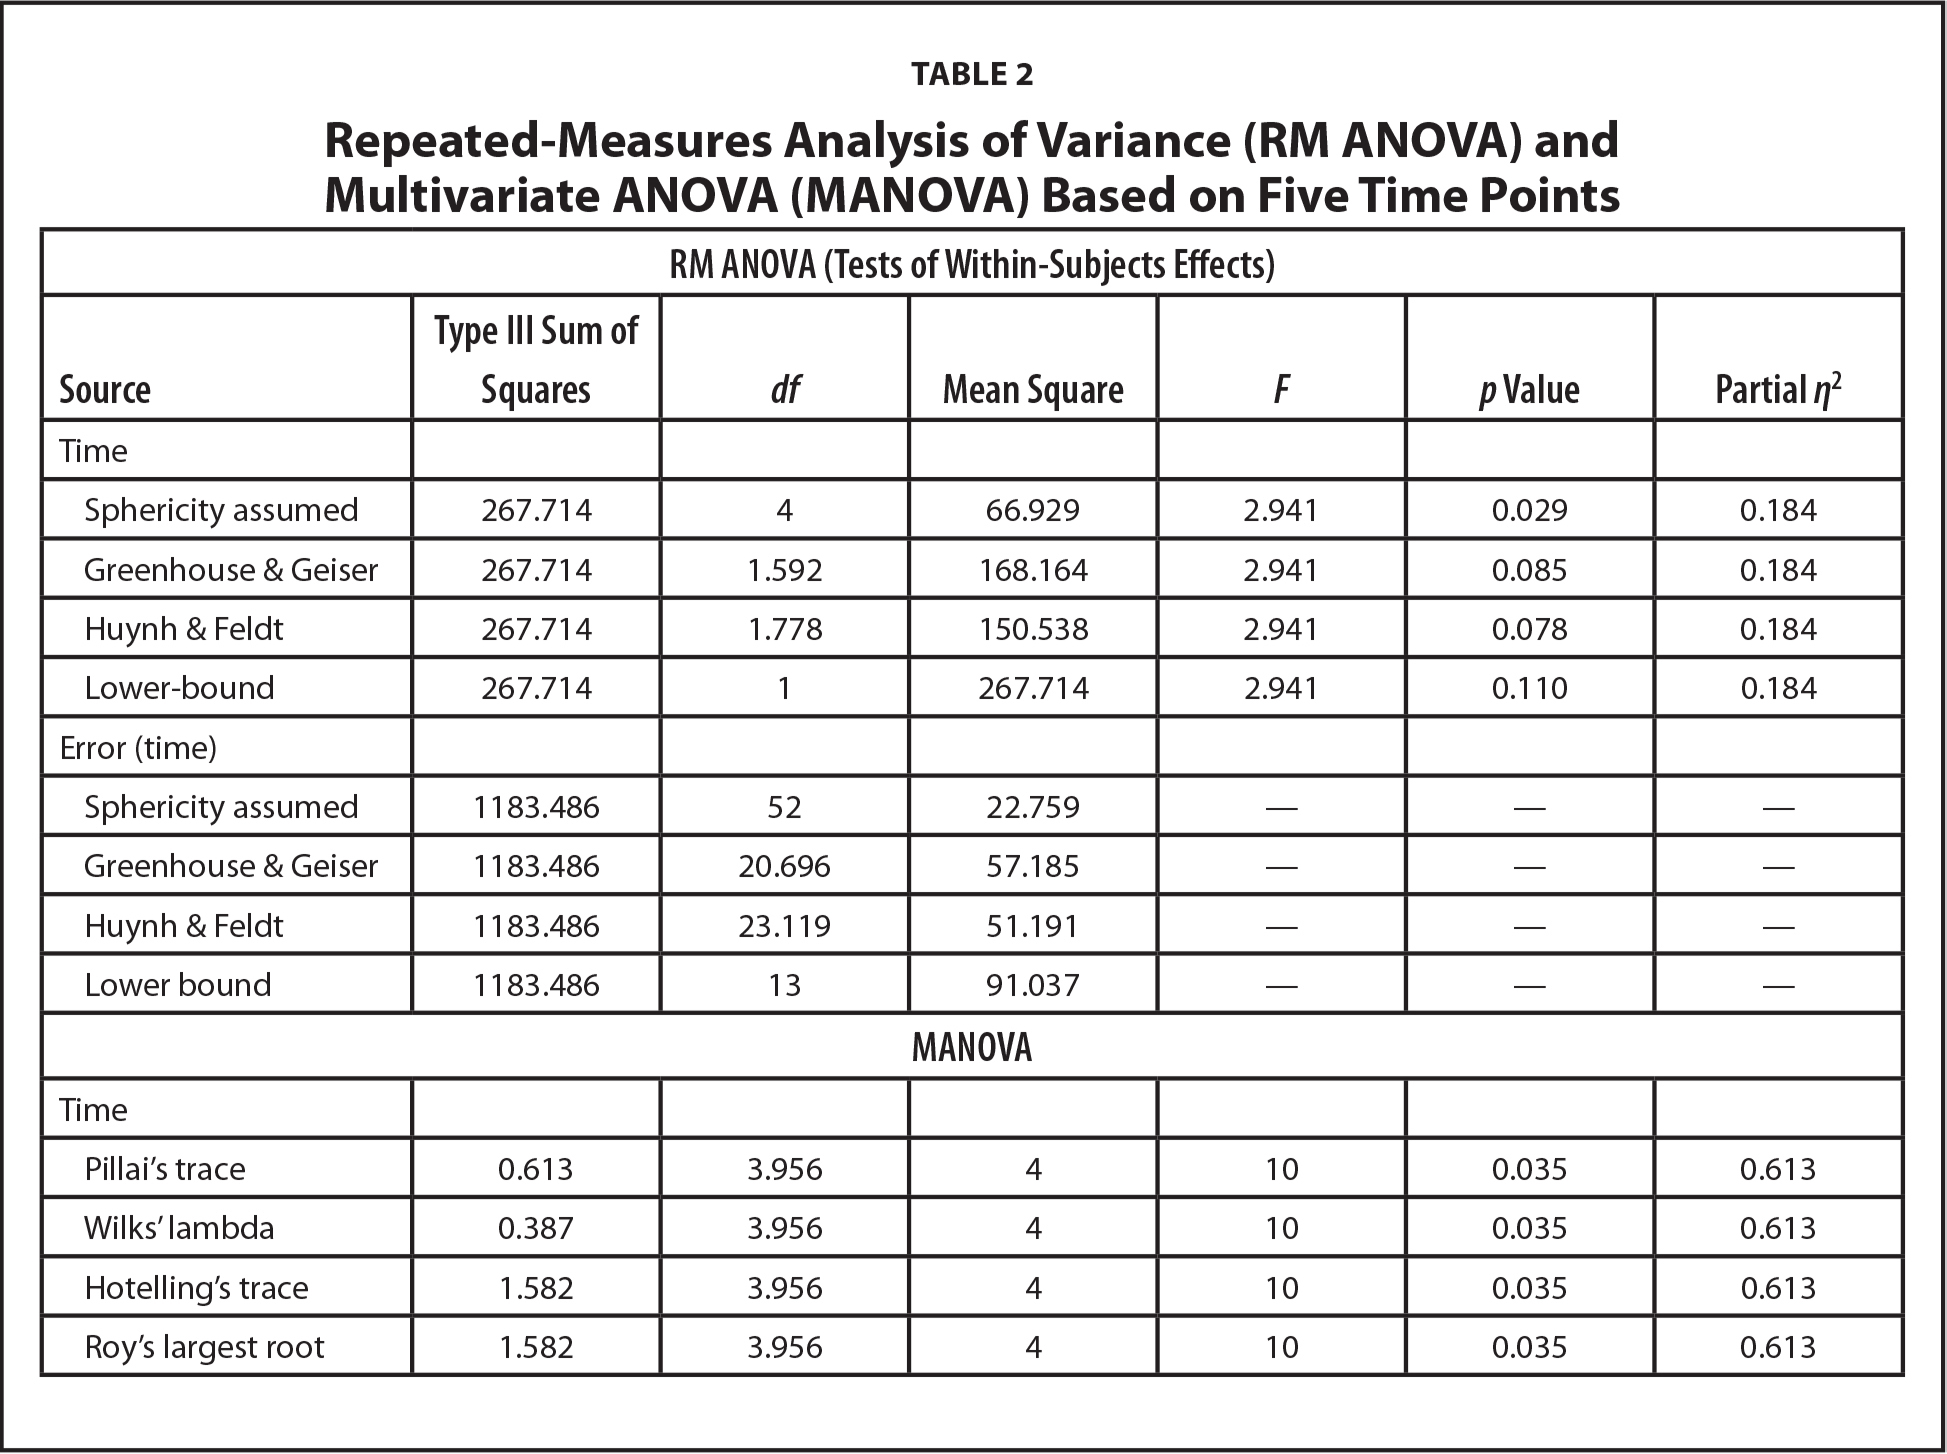 Repeated-Measures Analysis of Variance (RM ANOVA) and Multivariate ANOVA (MANOVA) Based on Five Time Points